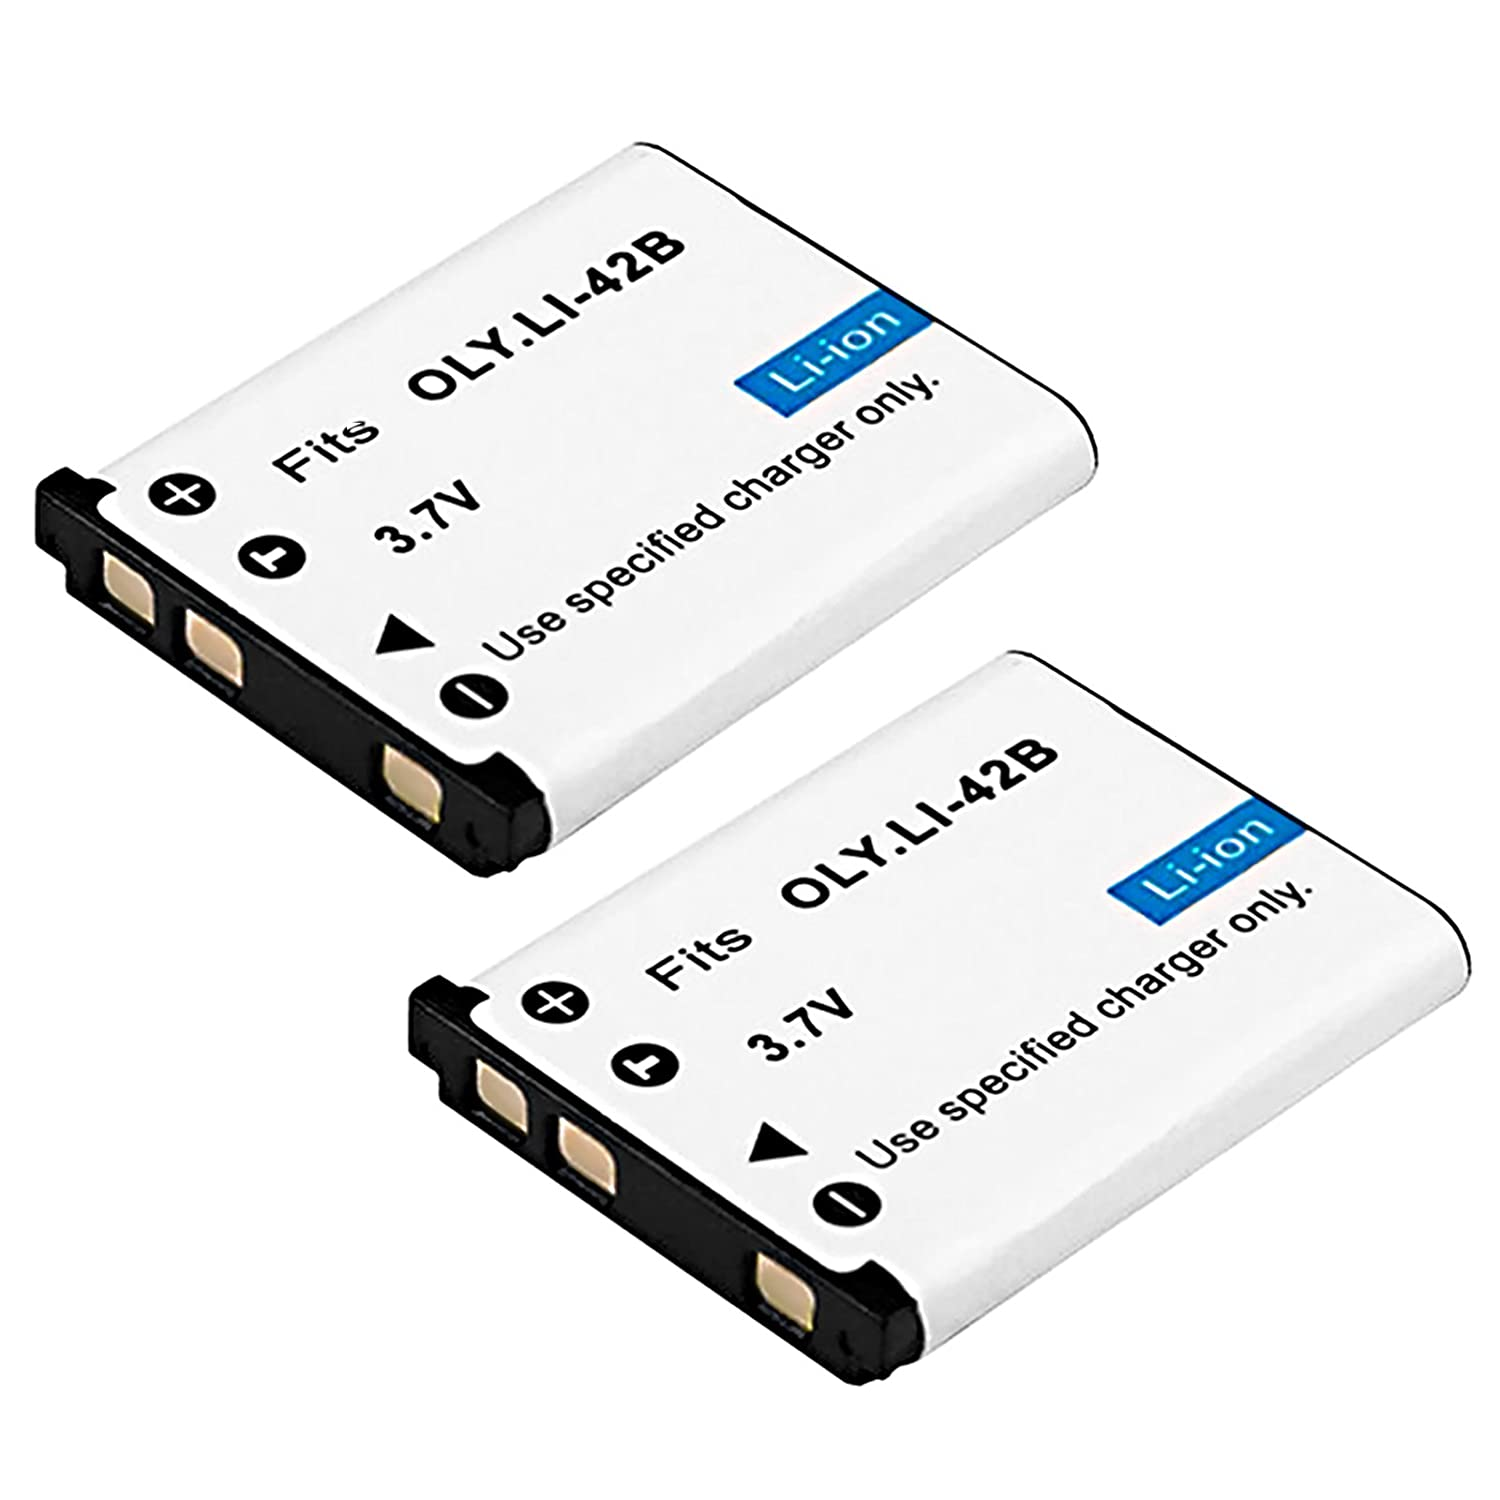 2-Pack LI-42B UltraPro Accessory Bundle Included LI-40B LI-40C High-Capacity Replacement Battery with Rapid Dual Charger for Select Olympus Digital Cameras